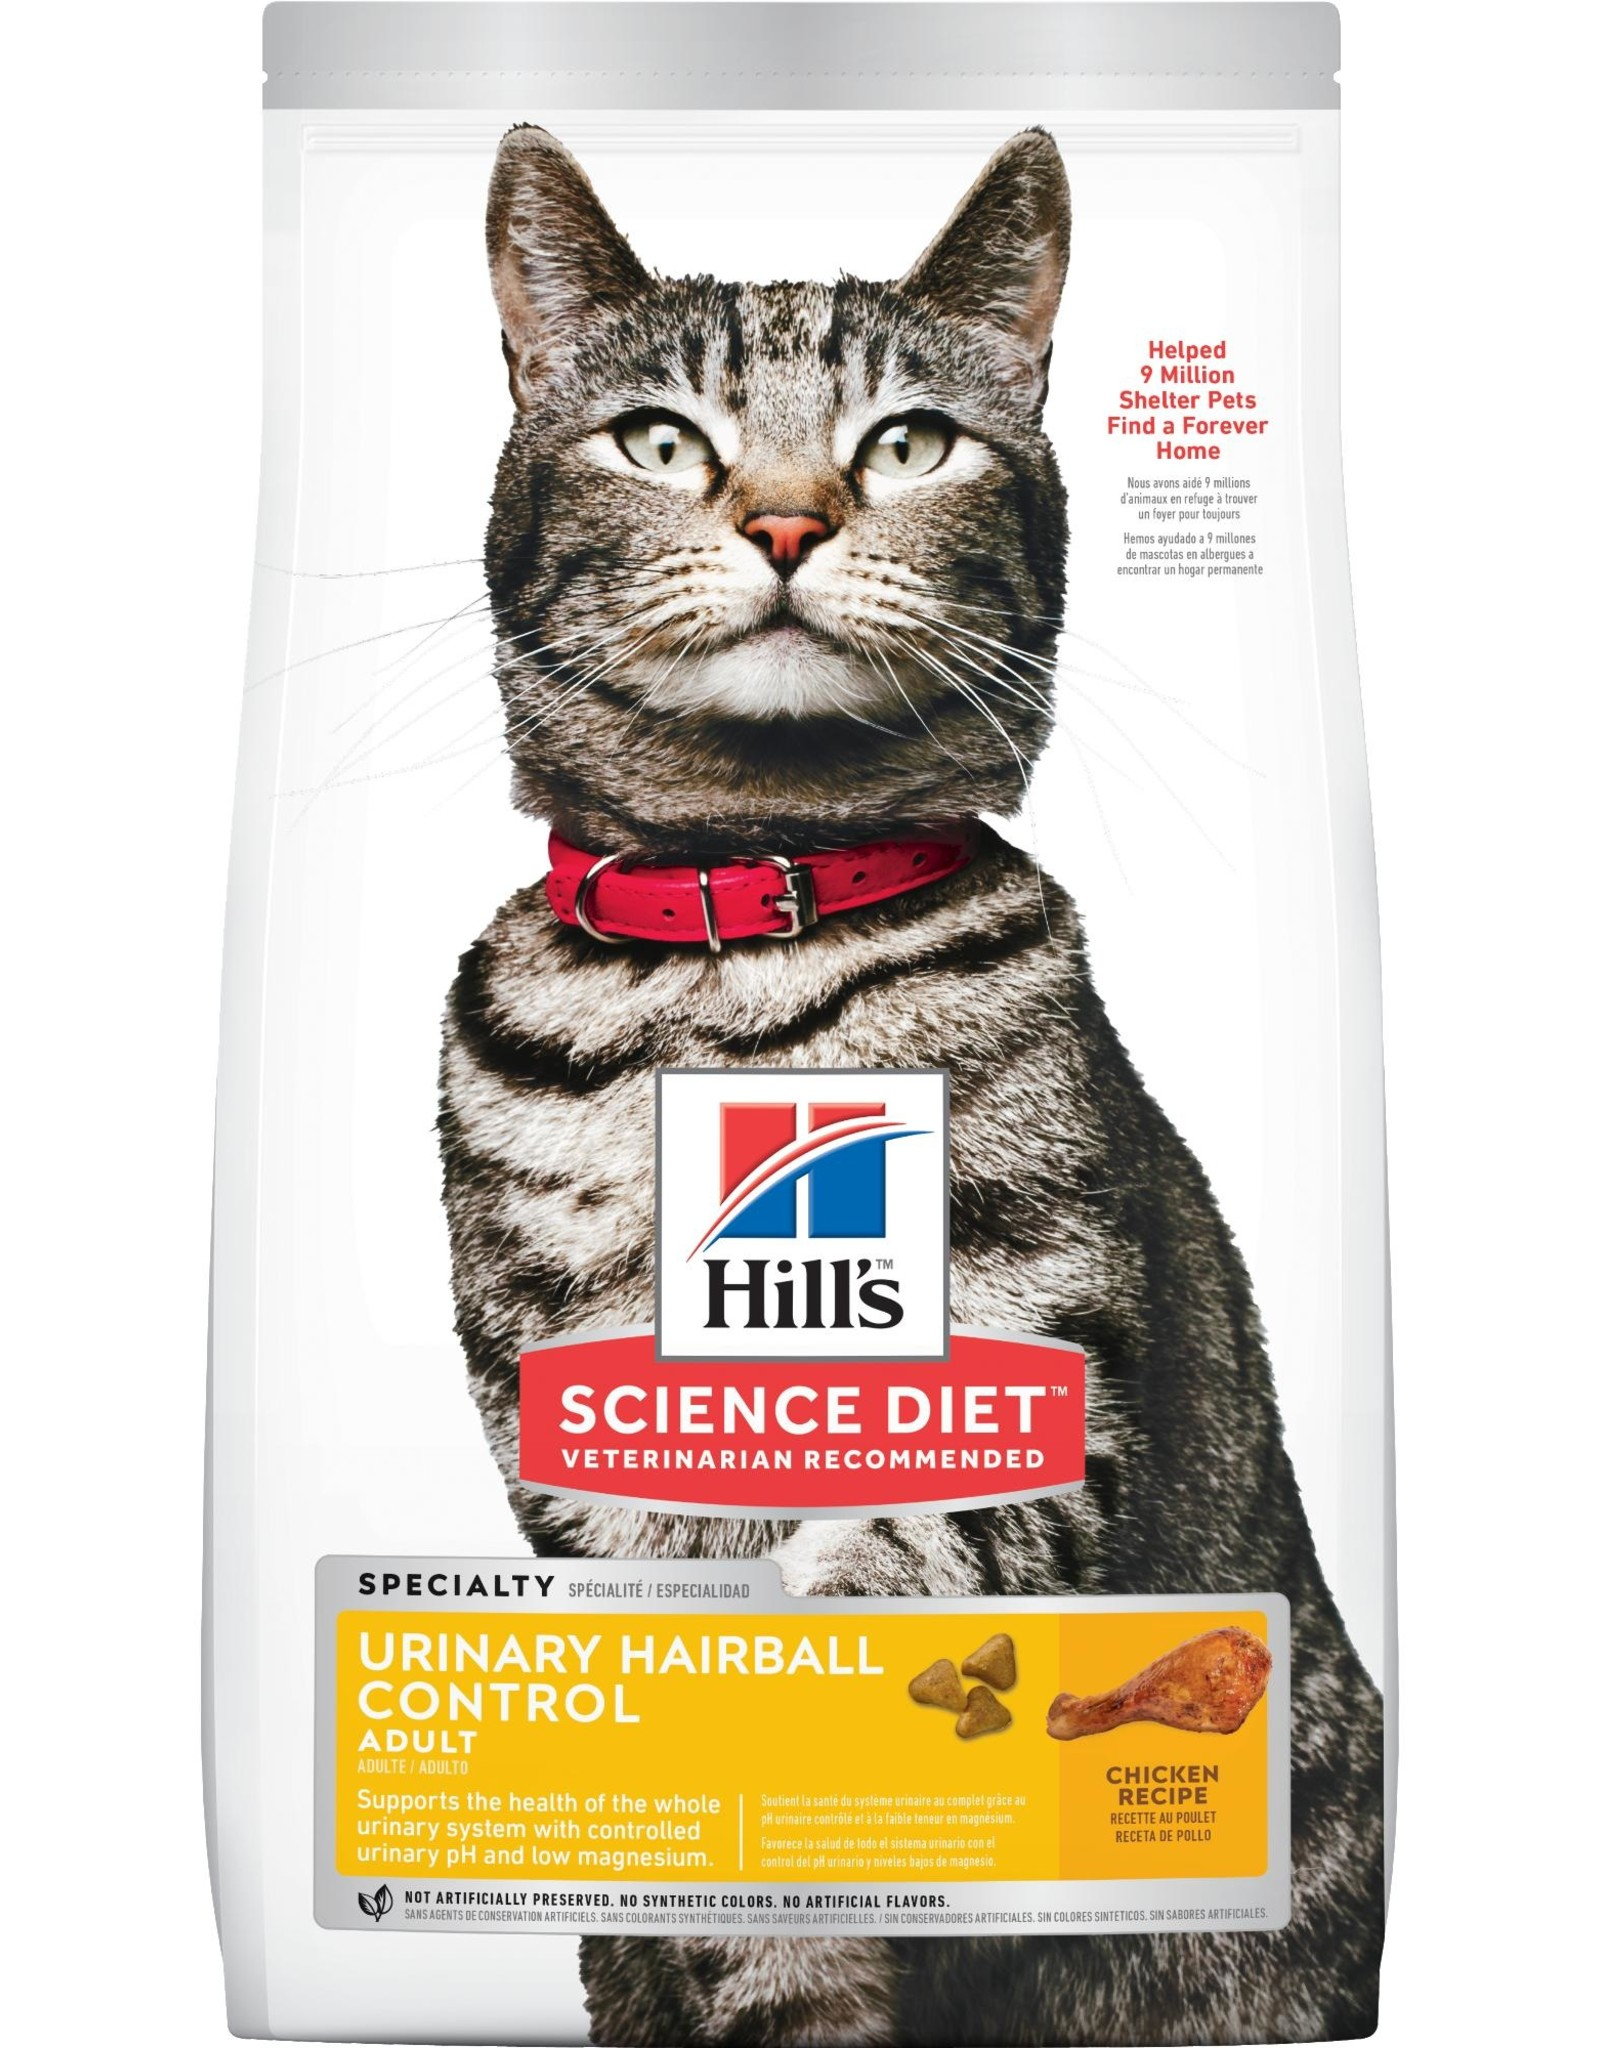 Hill's Science Diet Hill's Science Diet Feline Urinary & Hairball Control 7lbs